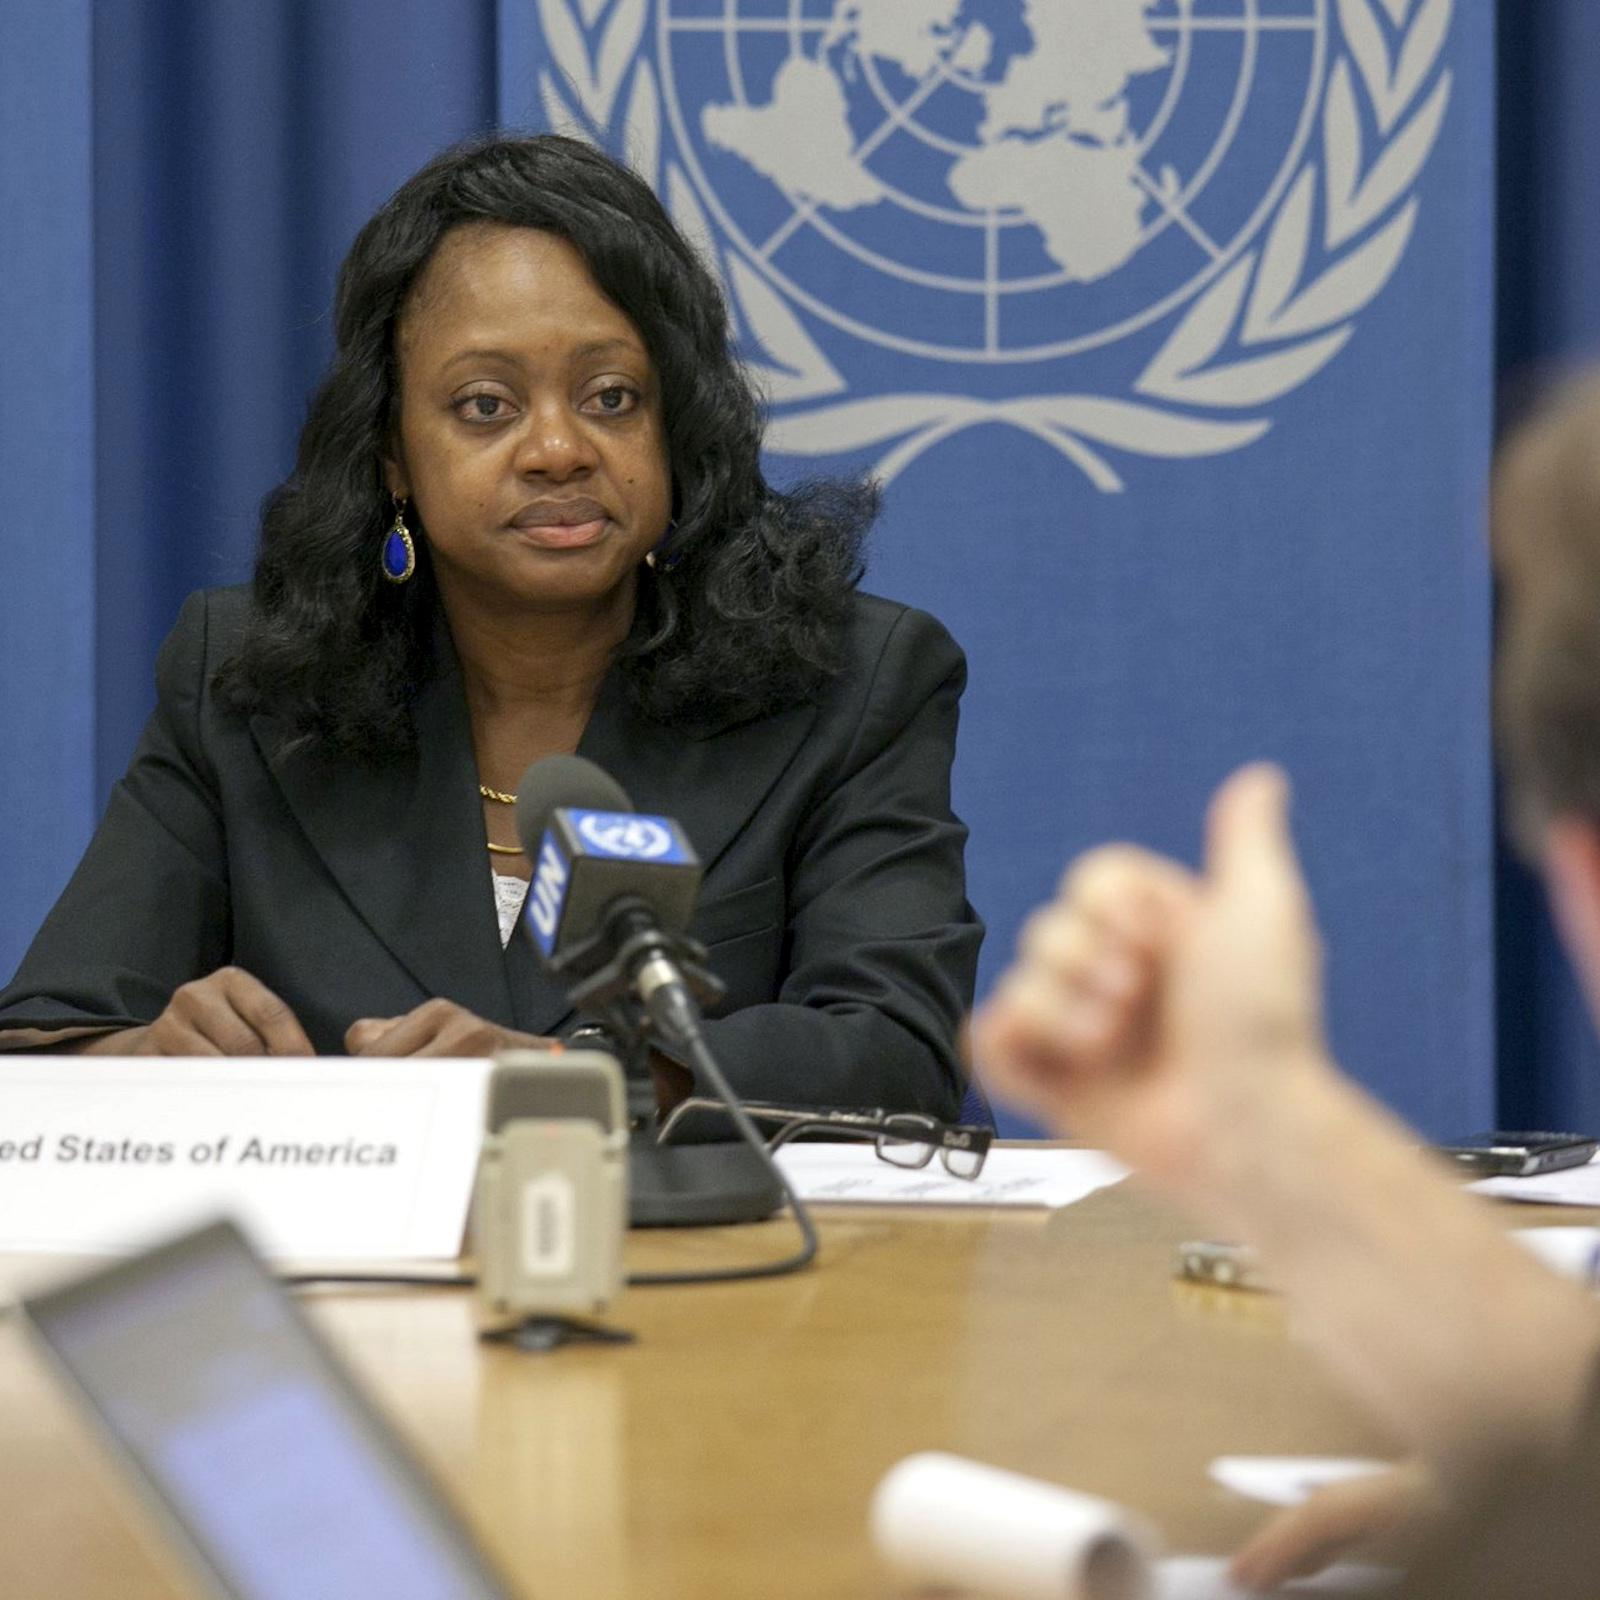 #65 - Ambassador Bonnie Jenkins on 8 years pursuing WMD arms control, & diversity in diplomacy